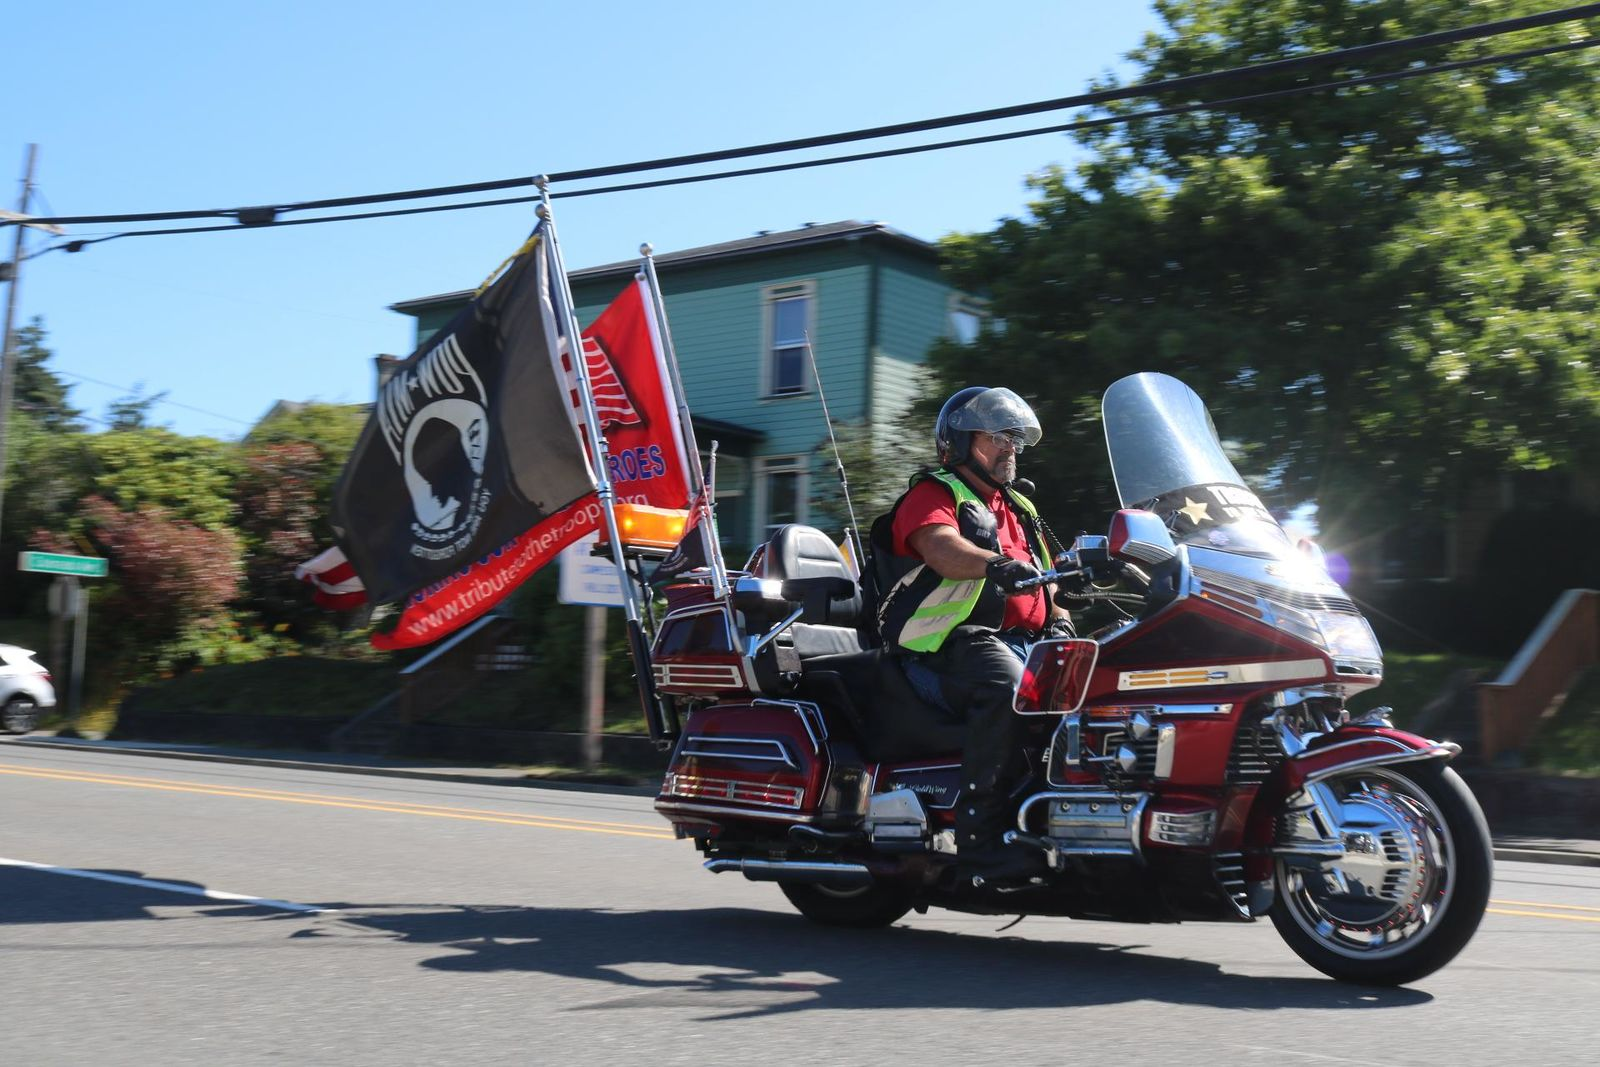 Tribute to Troops plans to ride up and down the South Coast in honor of fallen vets